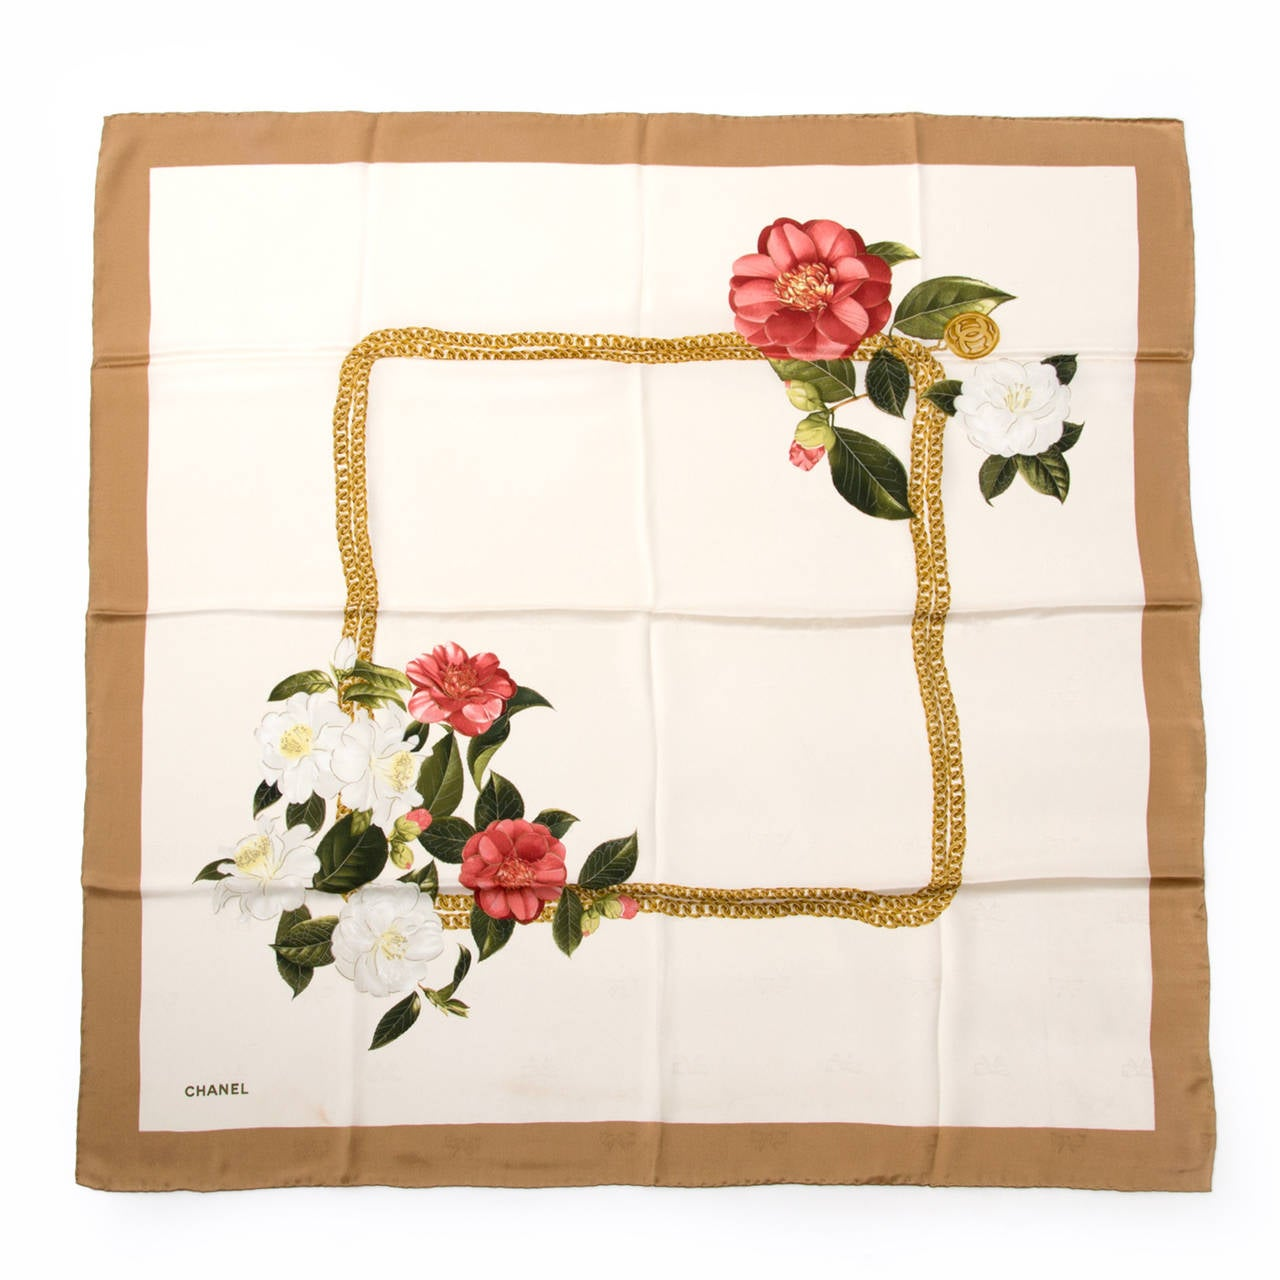 Chanel Floral Scarf 2